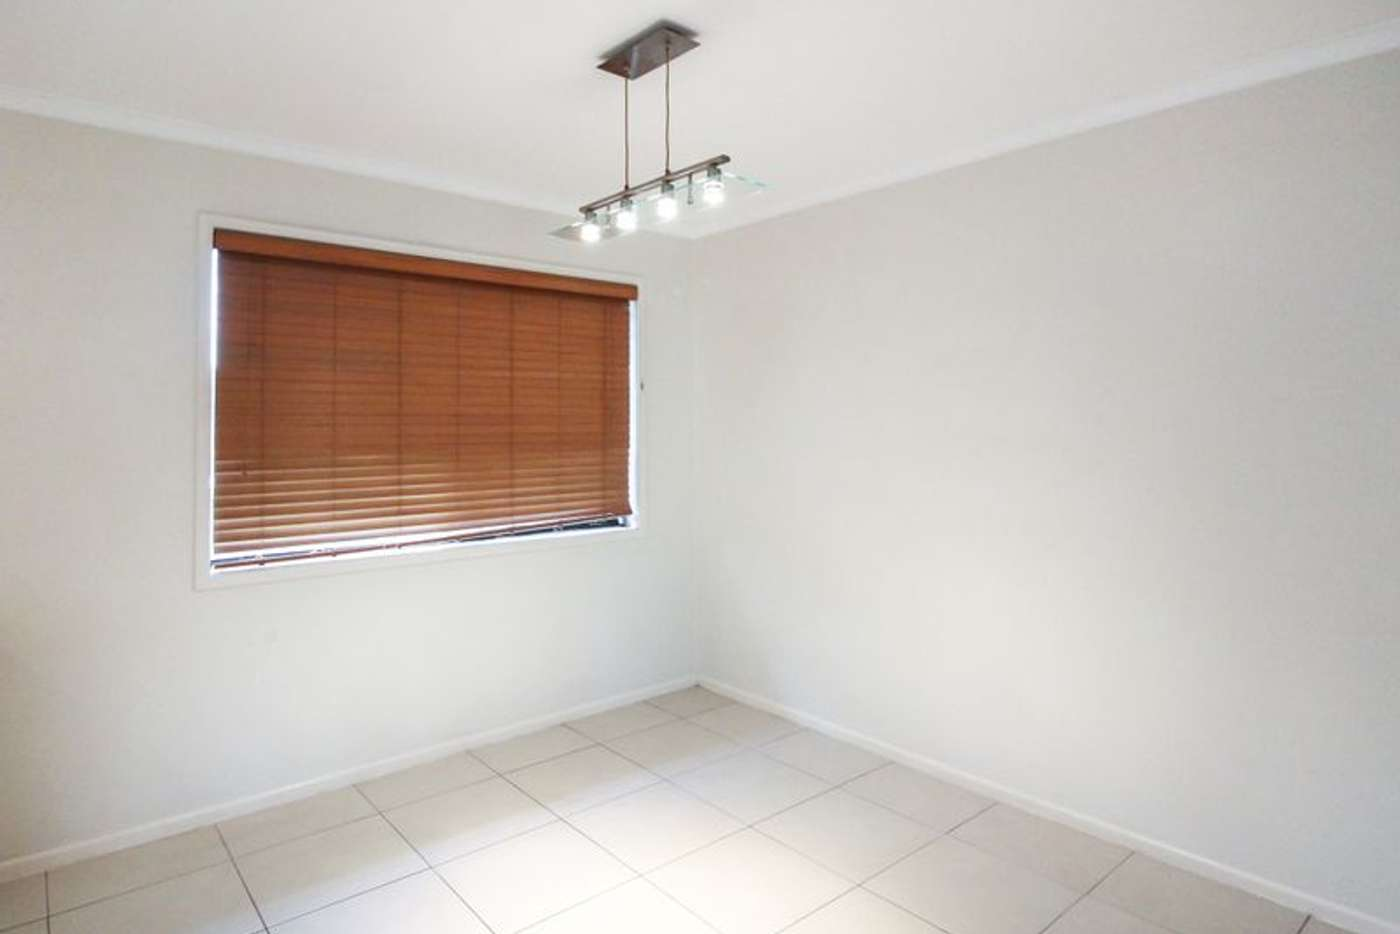 Sixth view of Homely house listing, 17 Lichen Court, Regents Park QLD 4118